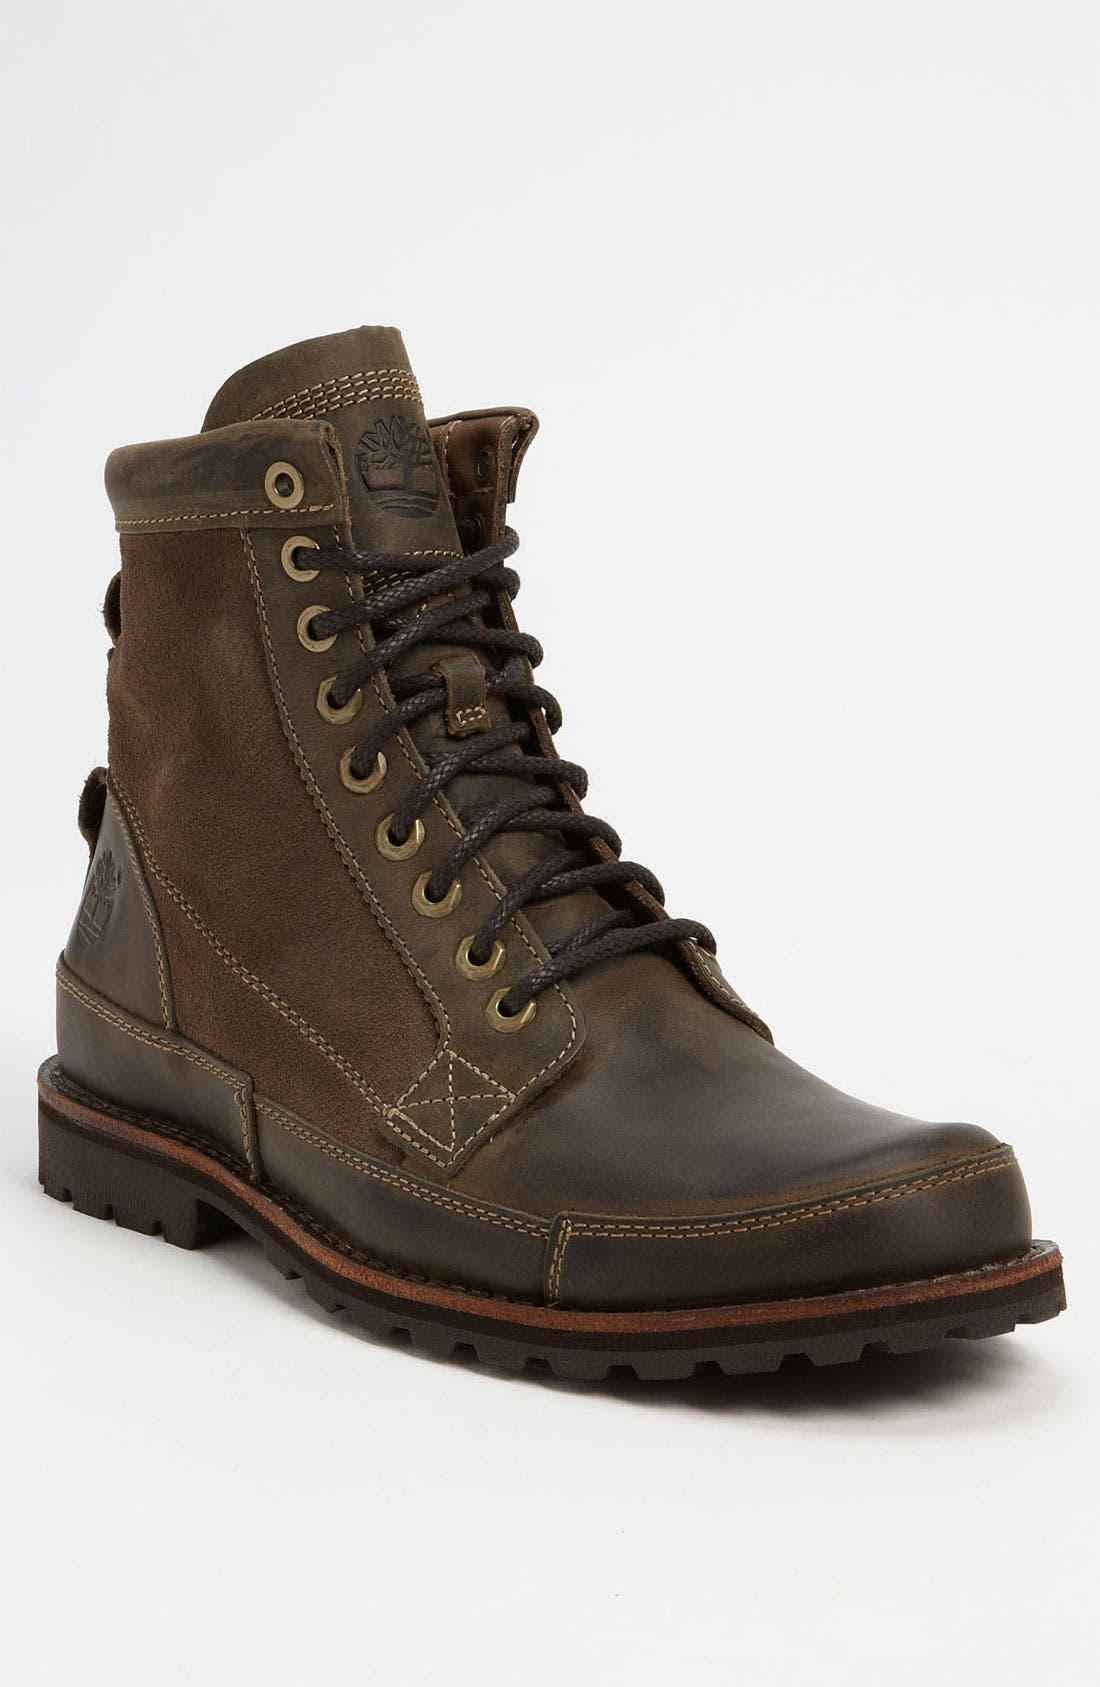 Main Image - TIMBERLAND EK ORIGINAL TALL 6IN LACE UP BOOT